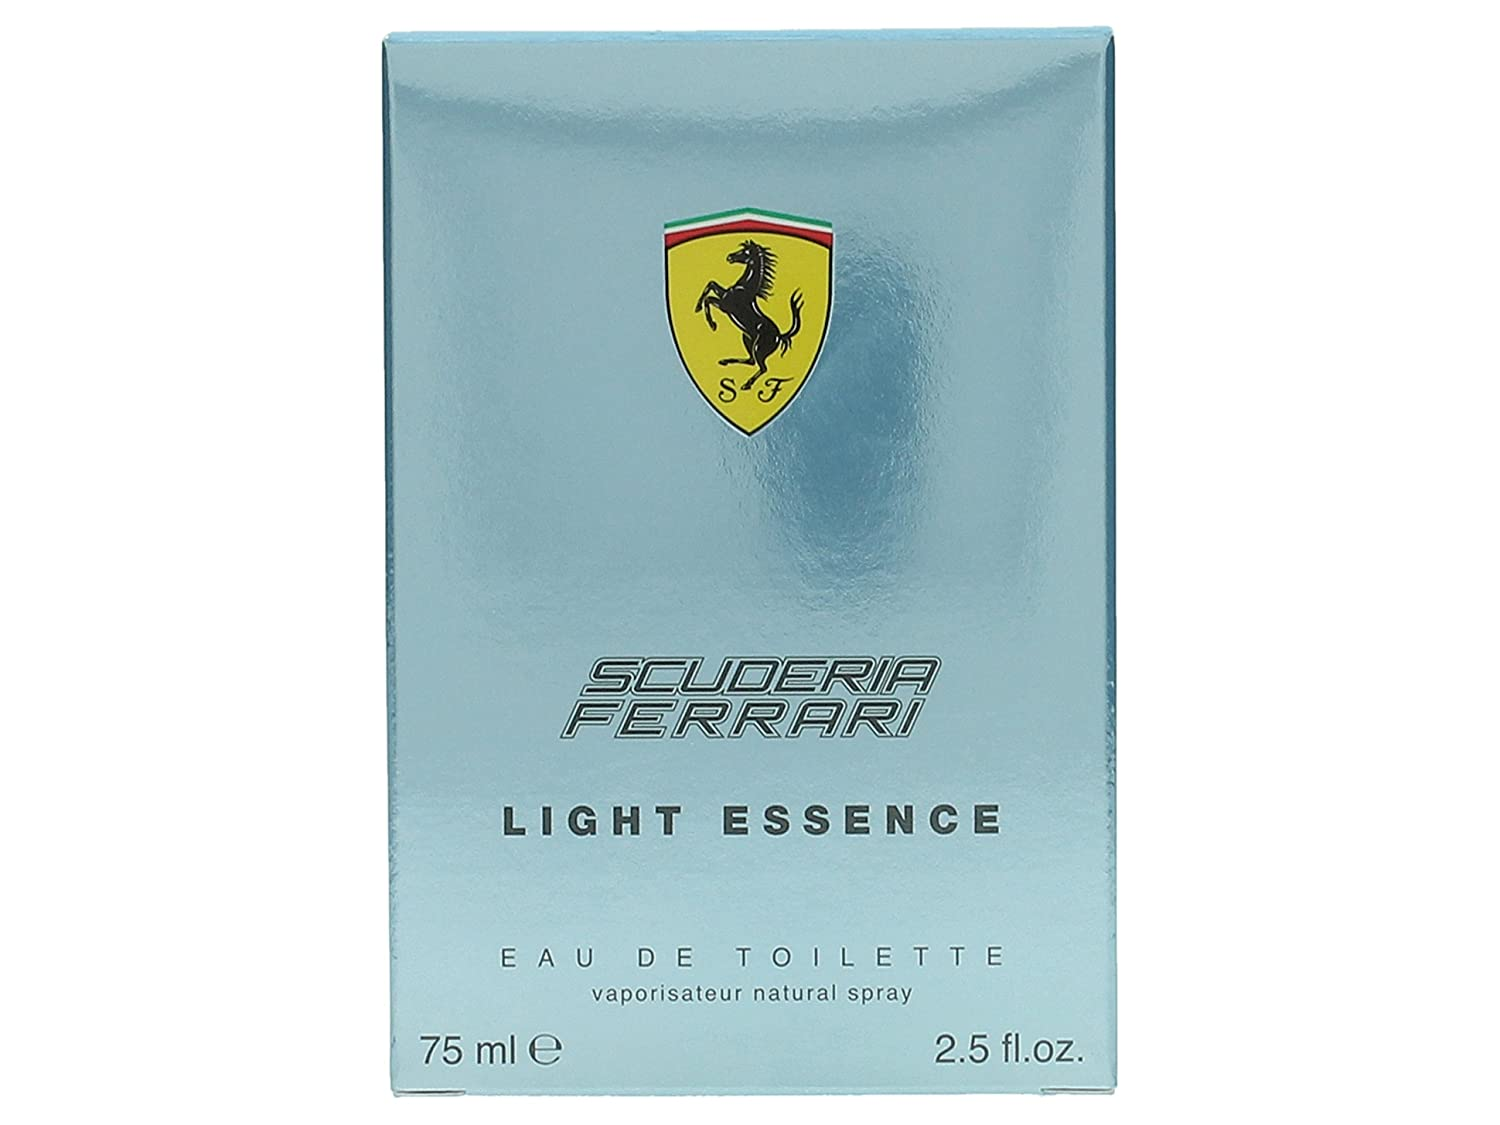 Ferrari - Light Essence - Eau de toilette para hombres - 75 ml: Amazon.es: Belleza